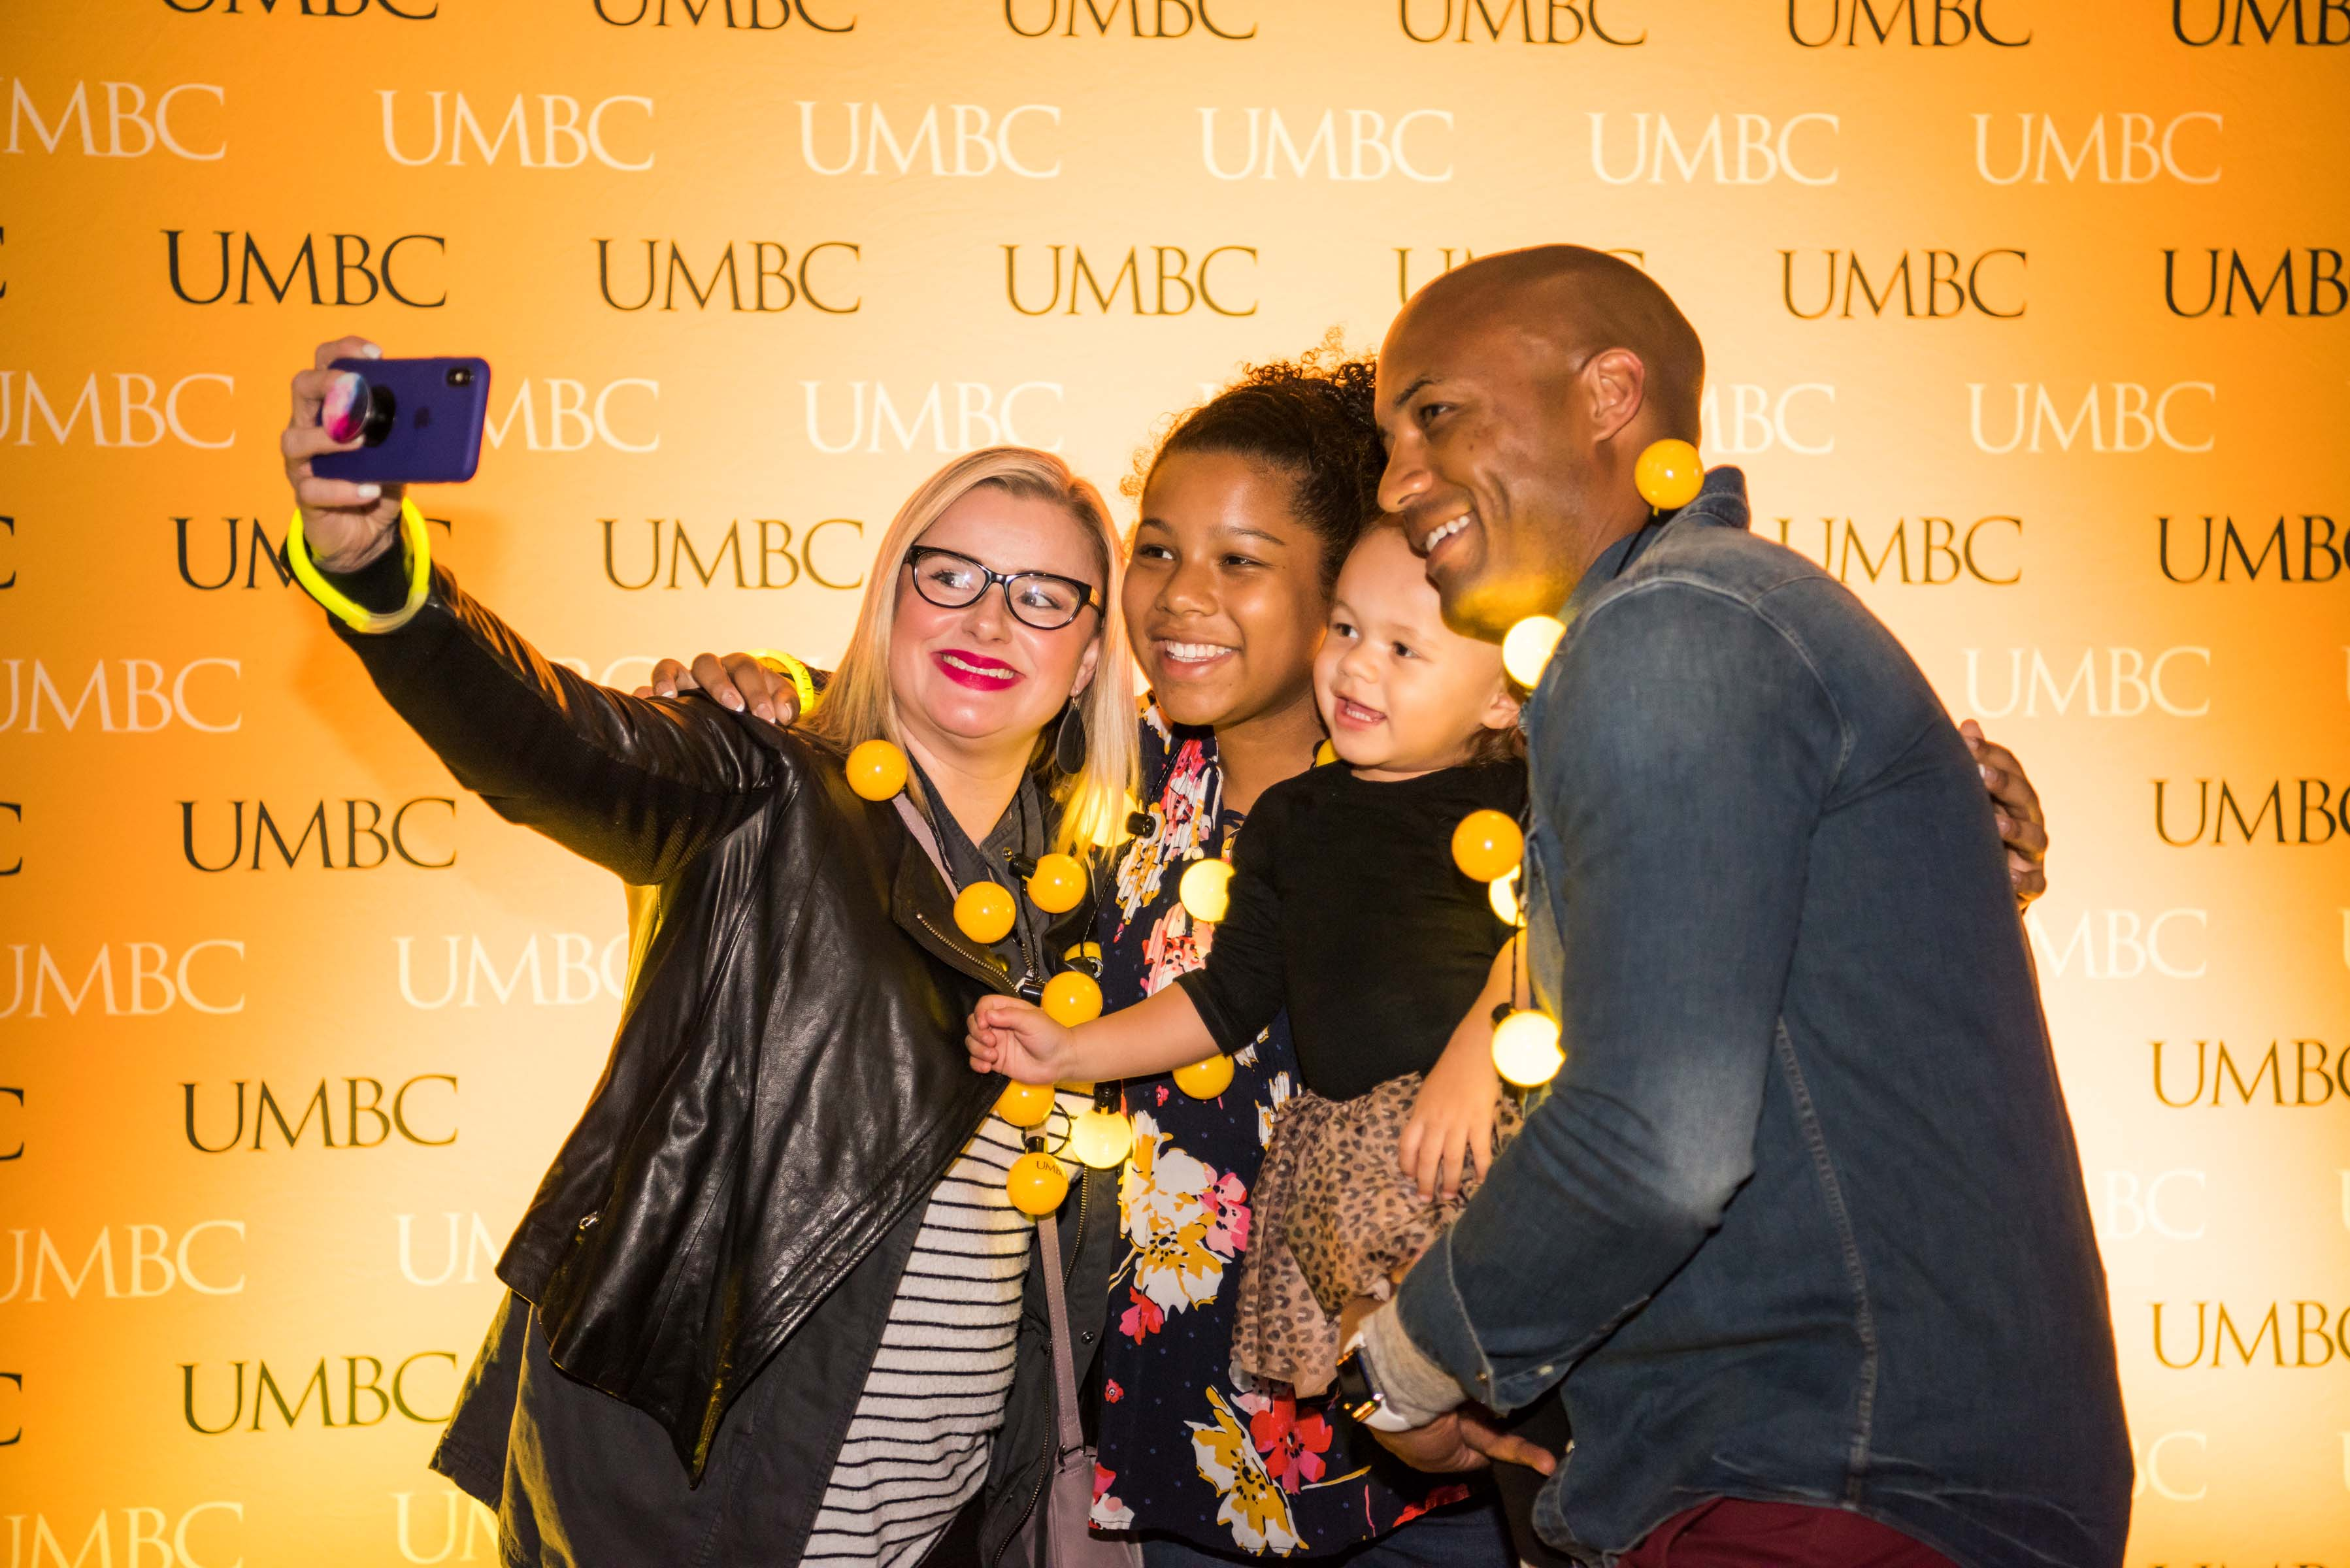 Family takes selfie in front of UMBC wall at alumni reception